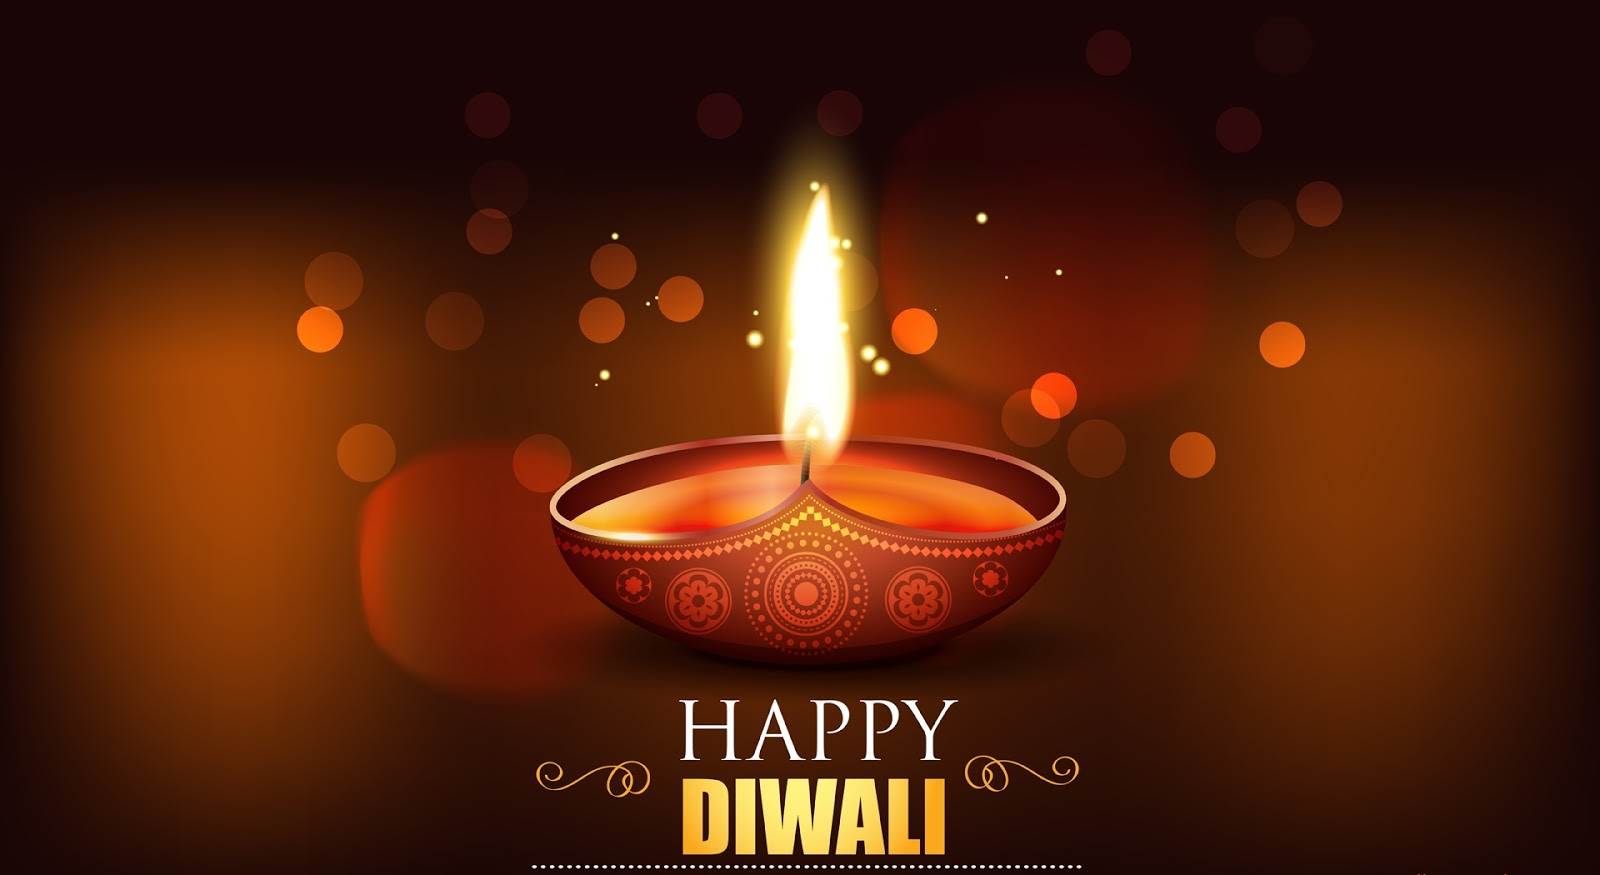 Diwali Sms And Greetings Messages For Diwali